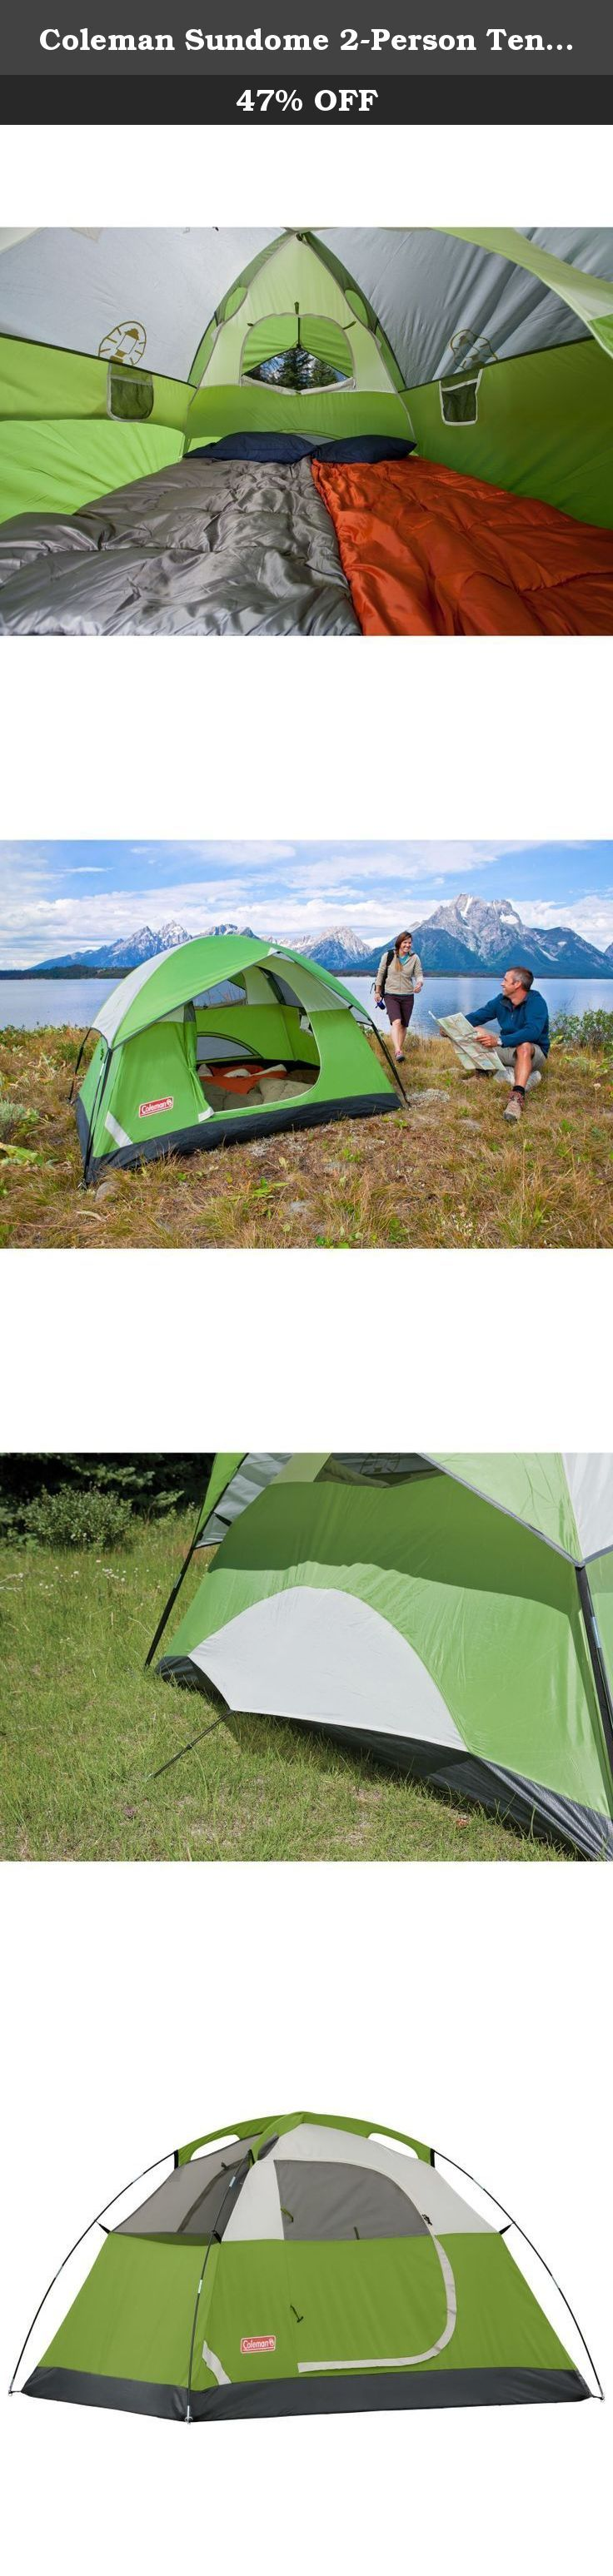 Coleman Sundome 2-Person Tent,Green. The Coleman sundome tent is ideal for weekend car campers, extended camping trips, scout troops & Summer fun. Coleman tents are designed for easy set up by using a continuous pole sleeve and exclusive Pin and Ring Design making it possible for one person to set a coleman tent up without the need for assistance. Also the Exclusive WeatherTec system is designed to make sure you stay dry if it does begin to rain.